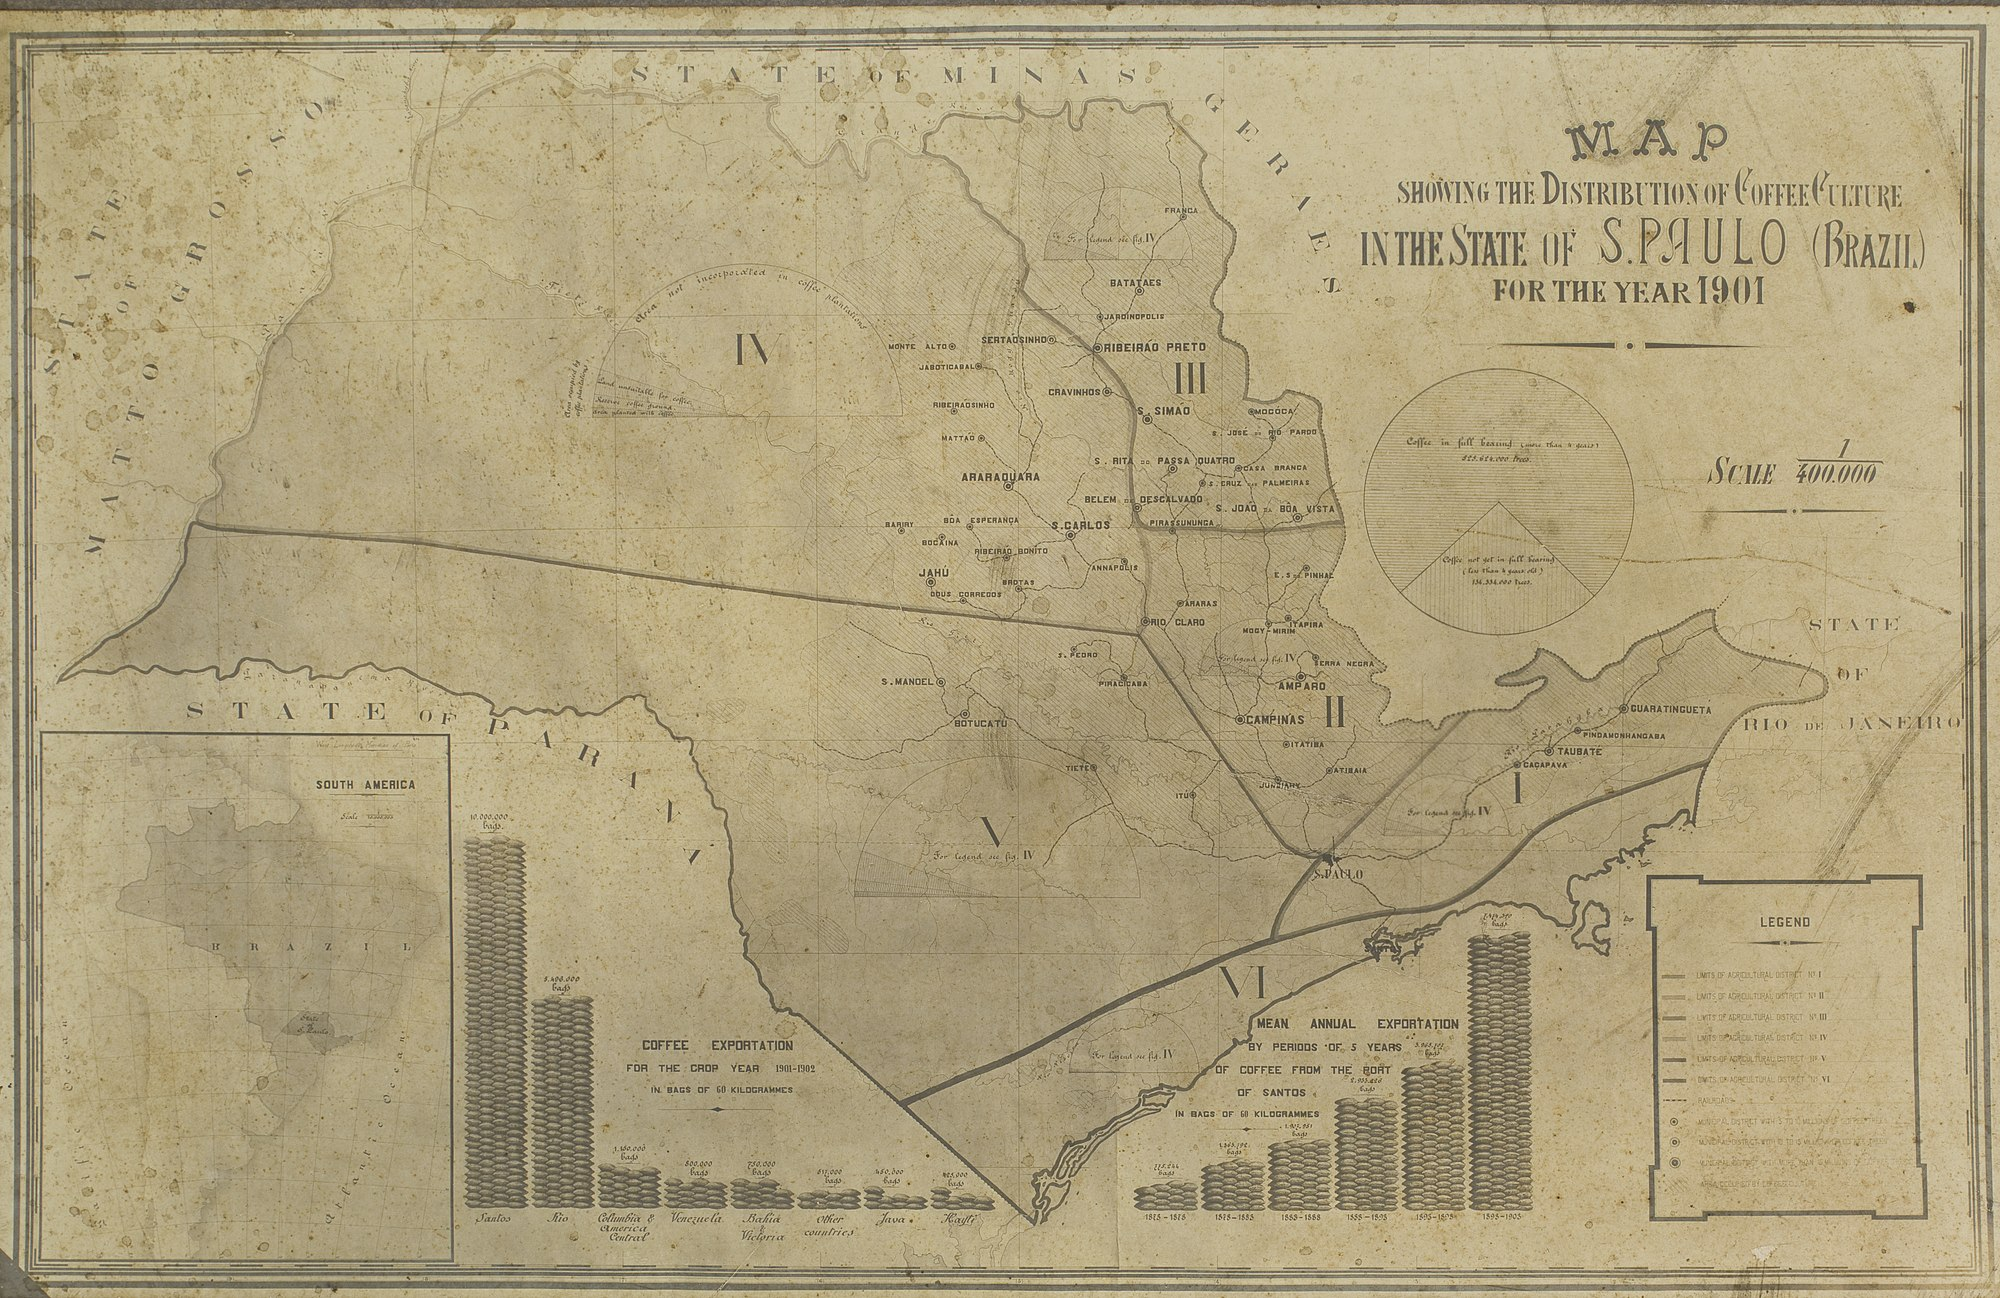 Reprodução de Mapa: Map Showing The Distribution of Coffee Culture In The State Of S. Paulo (Brazil) For The Year 1901